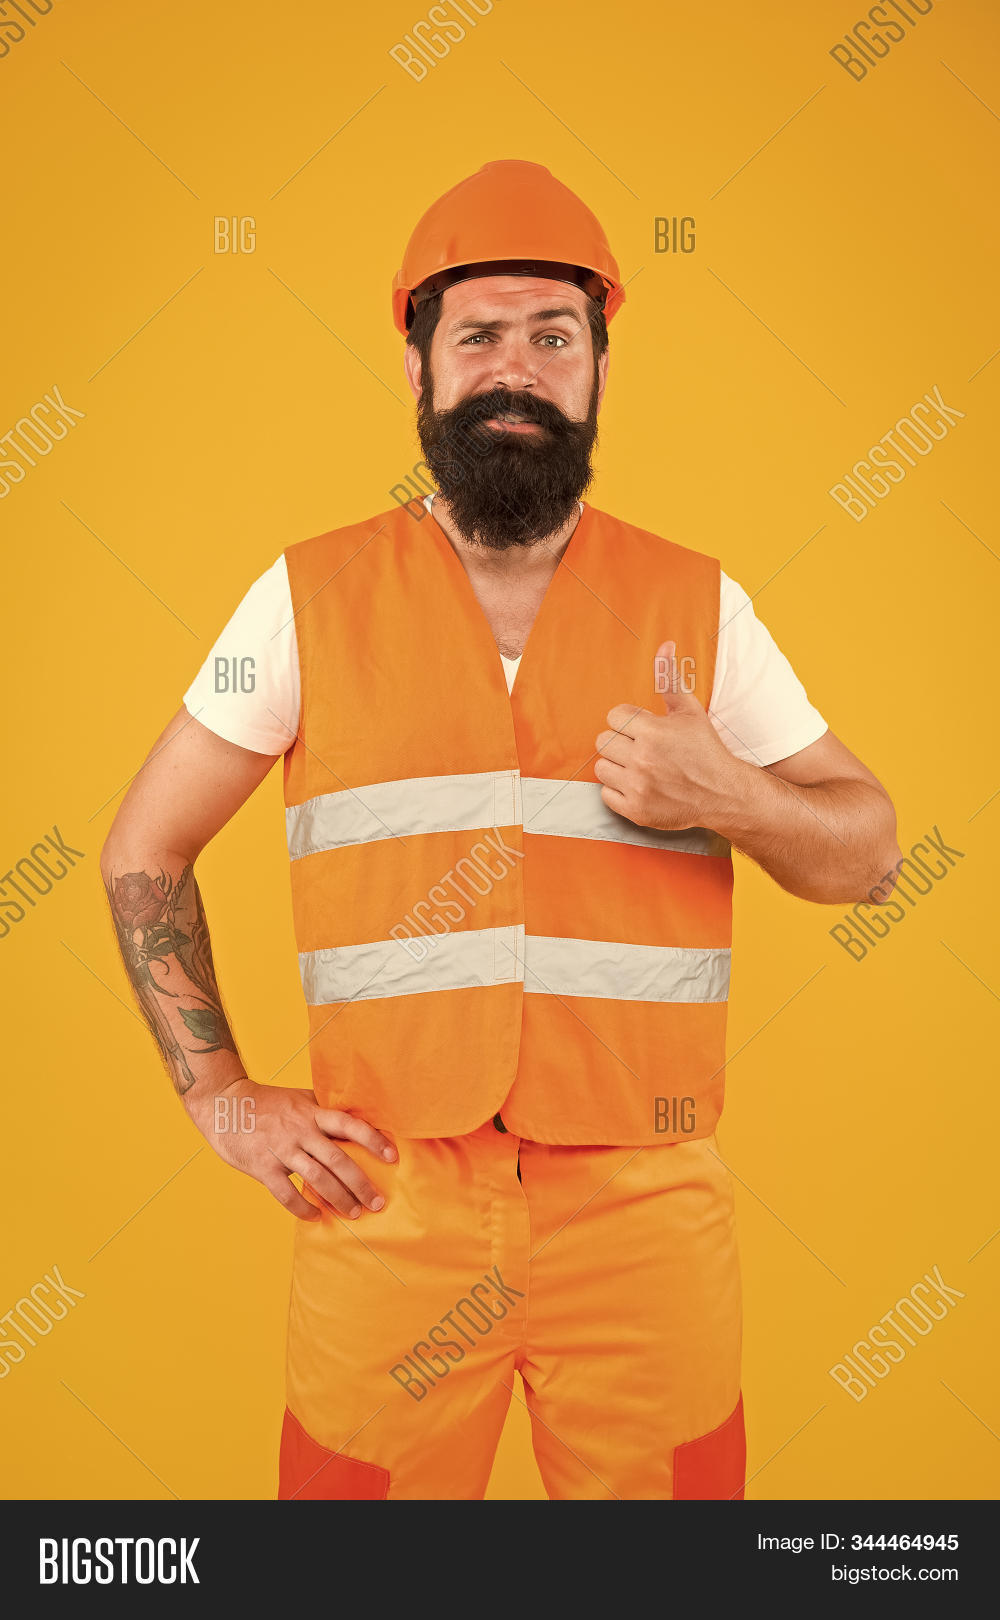 confident,man,worker,happy,gesture,confidence,positive,cool,optimistic,hopeful,sure,certain,work,working,builder,contractor,constructor,repairs,repairing,renovations,uniform,protective,protection,hat,helmet,vest,workwear,profession,professional,industrial,industry,gesturing,hipster,beard,unshaven,mustache,brutal,caucasian,moustache,smile,smiling,emotions,yellow,background